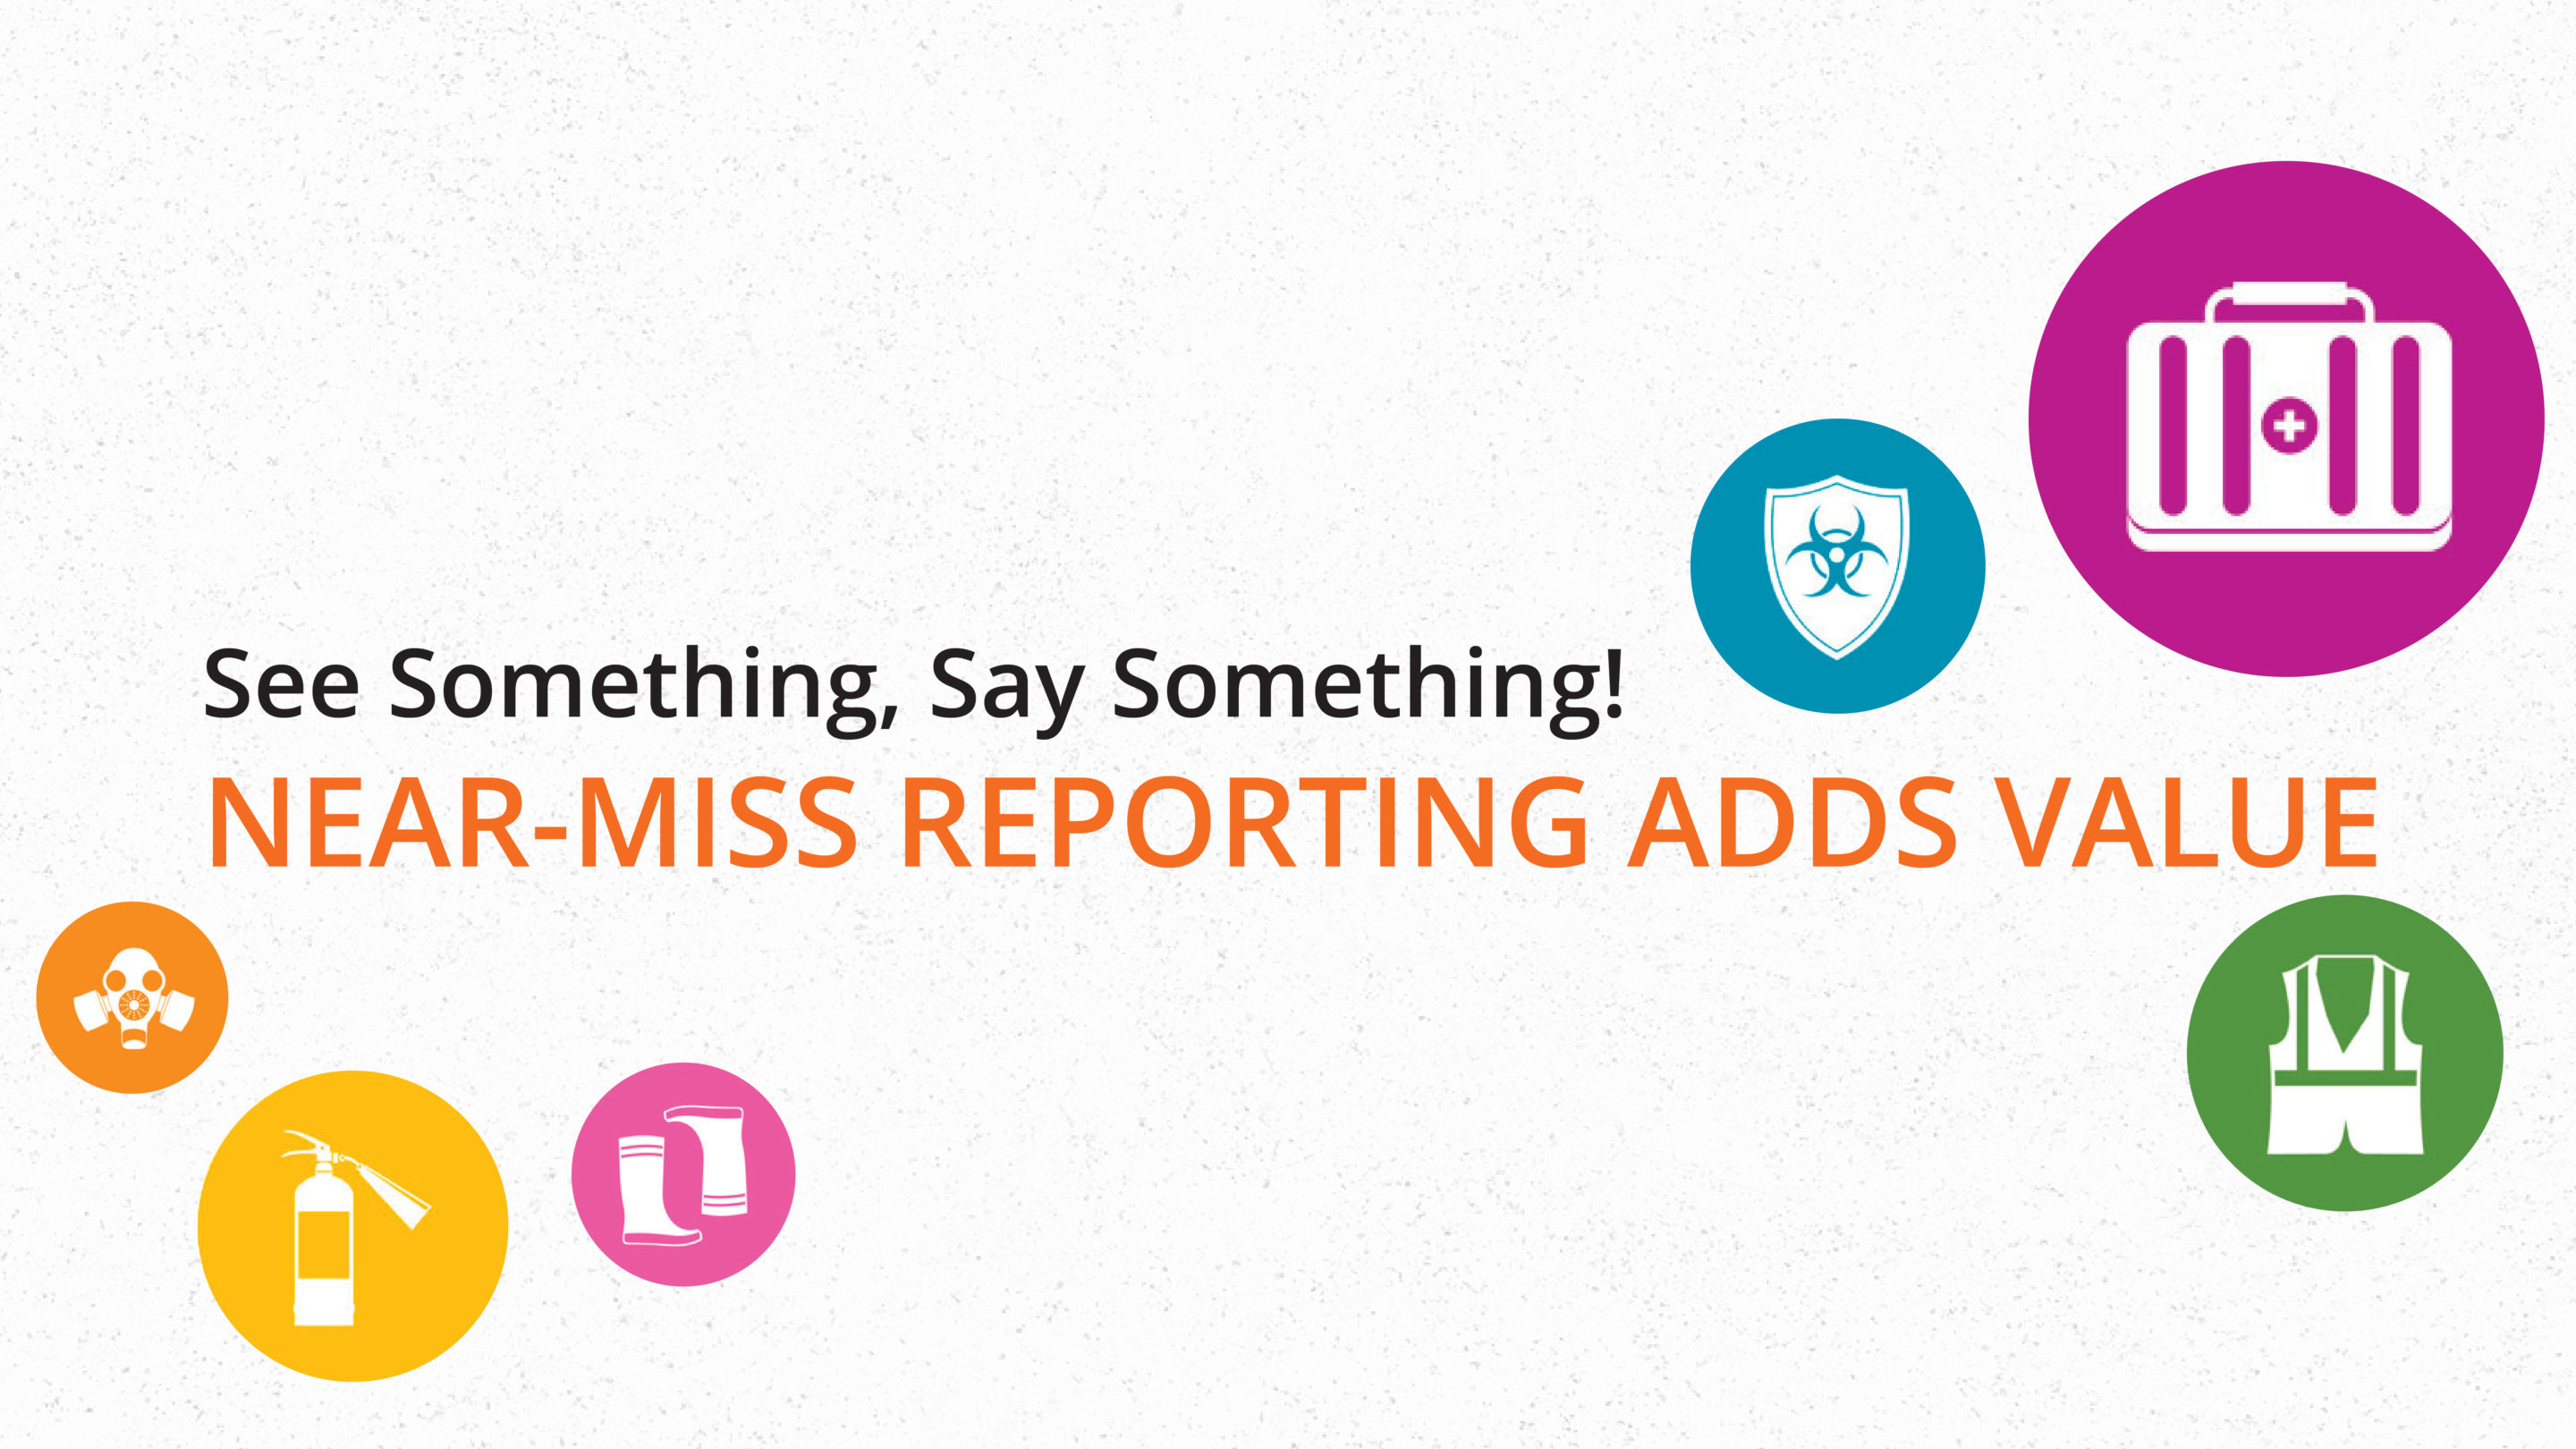 See Something, Say Something! Near-Miss Reporting Adds Value